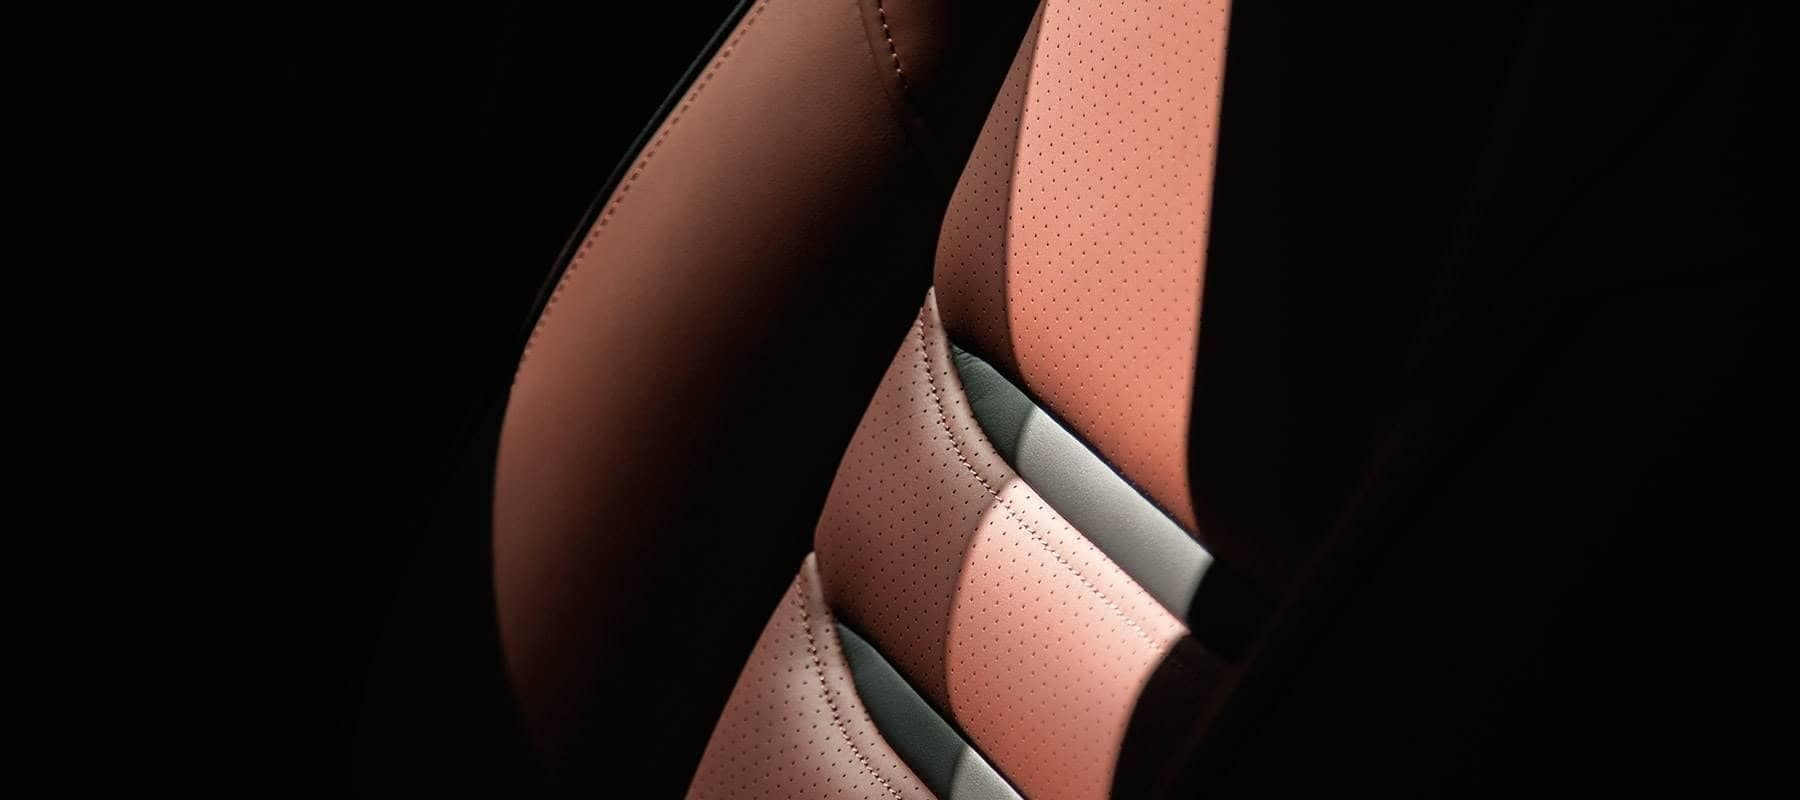 2019-mazda-cx-9-nappa-leather-upholstery